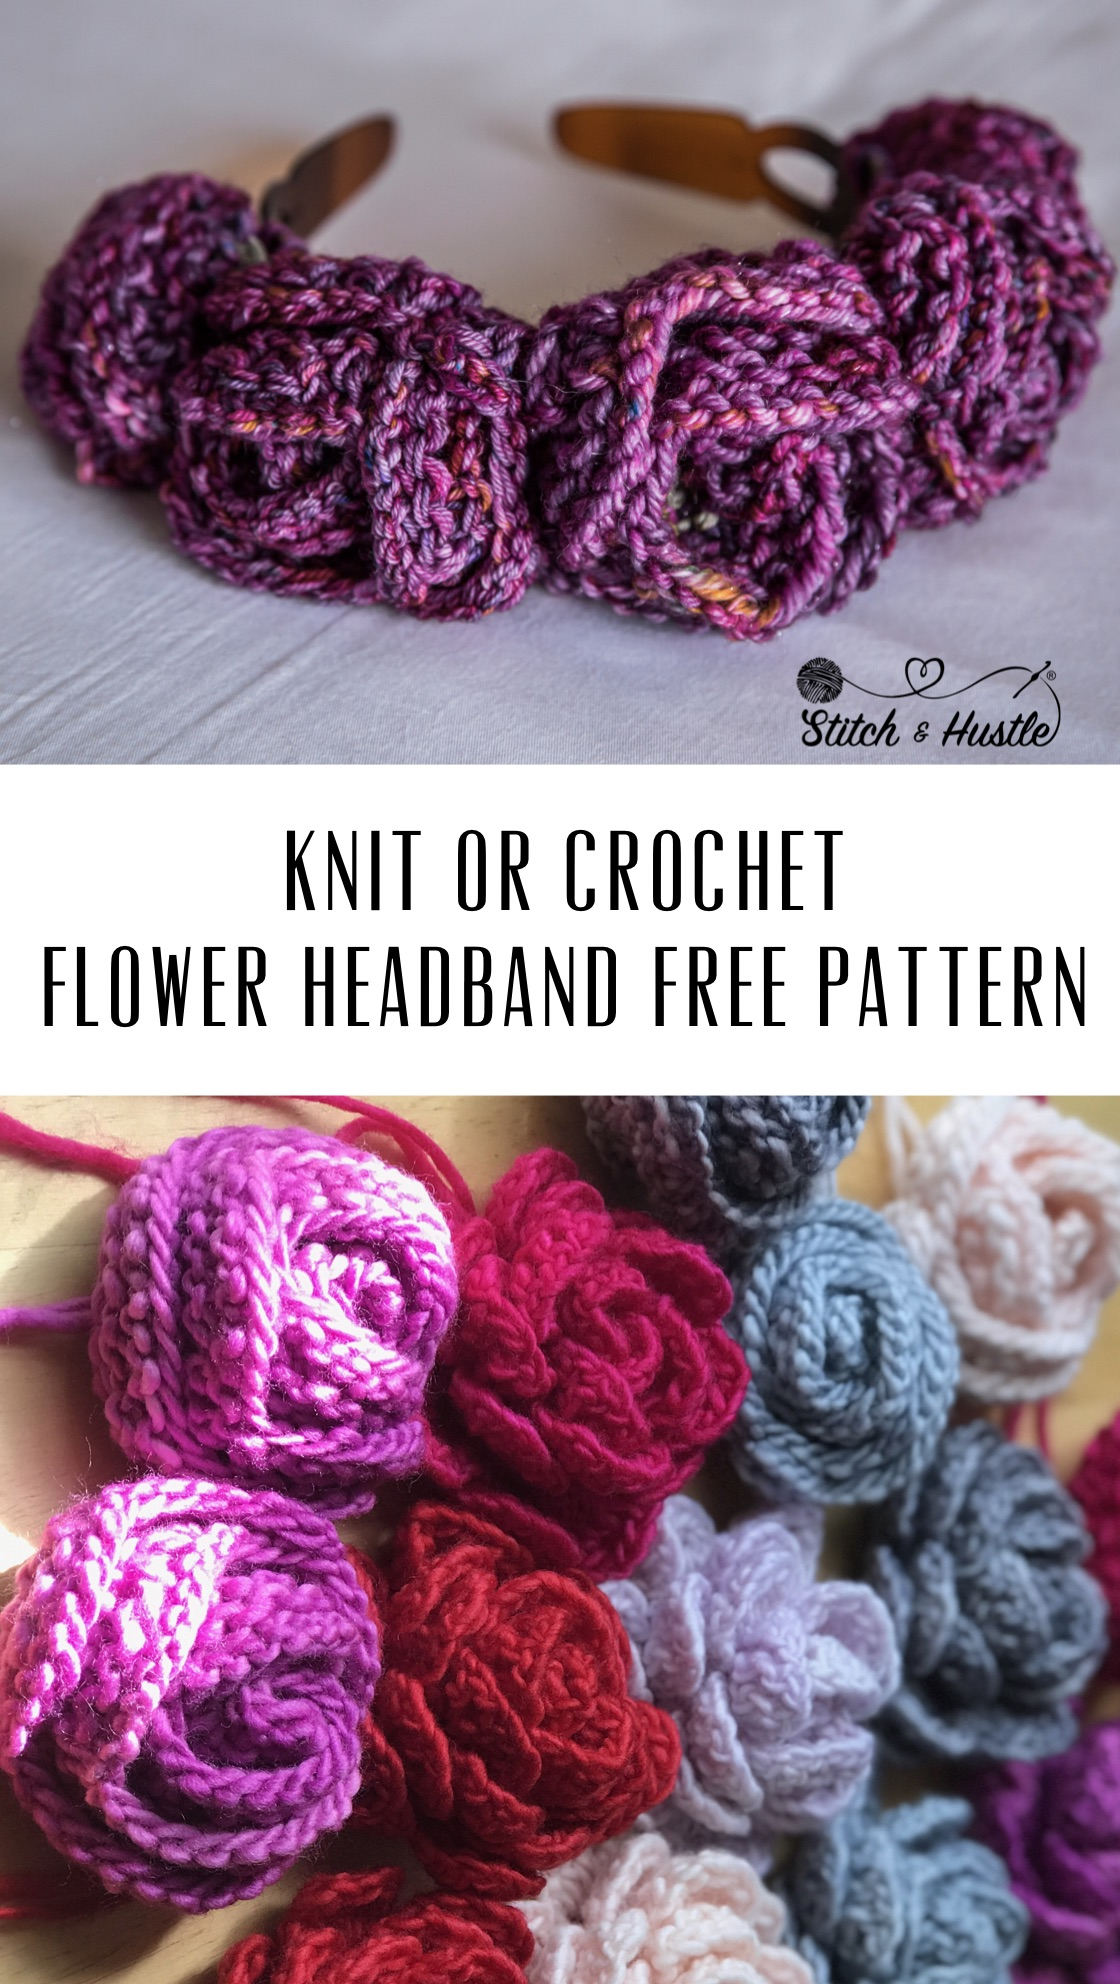 crochet-and-knit-flower-crown-free-pattern-2.jpg